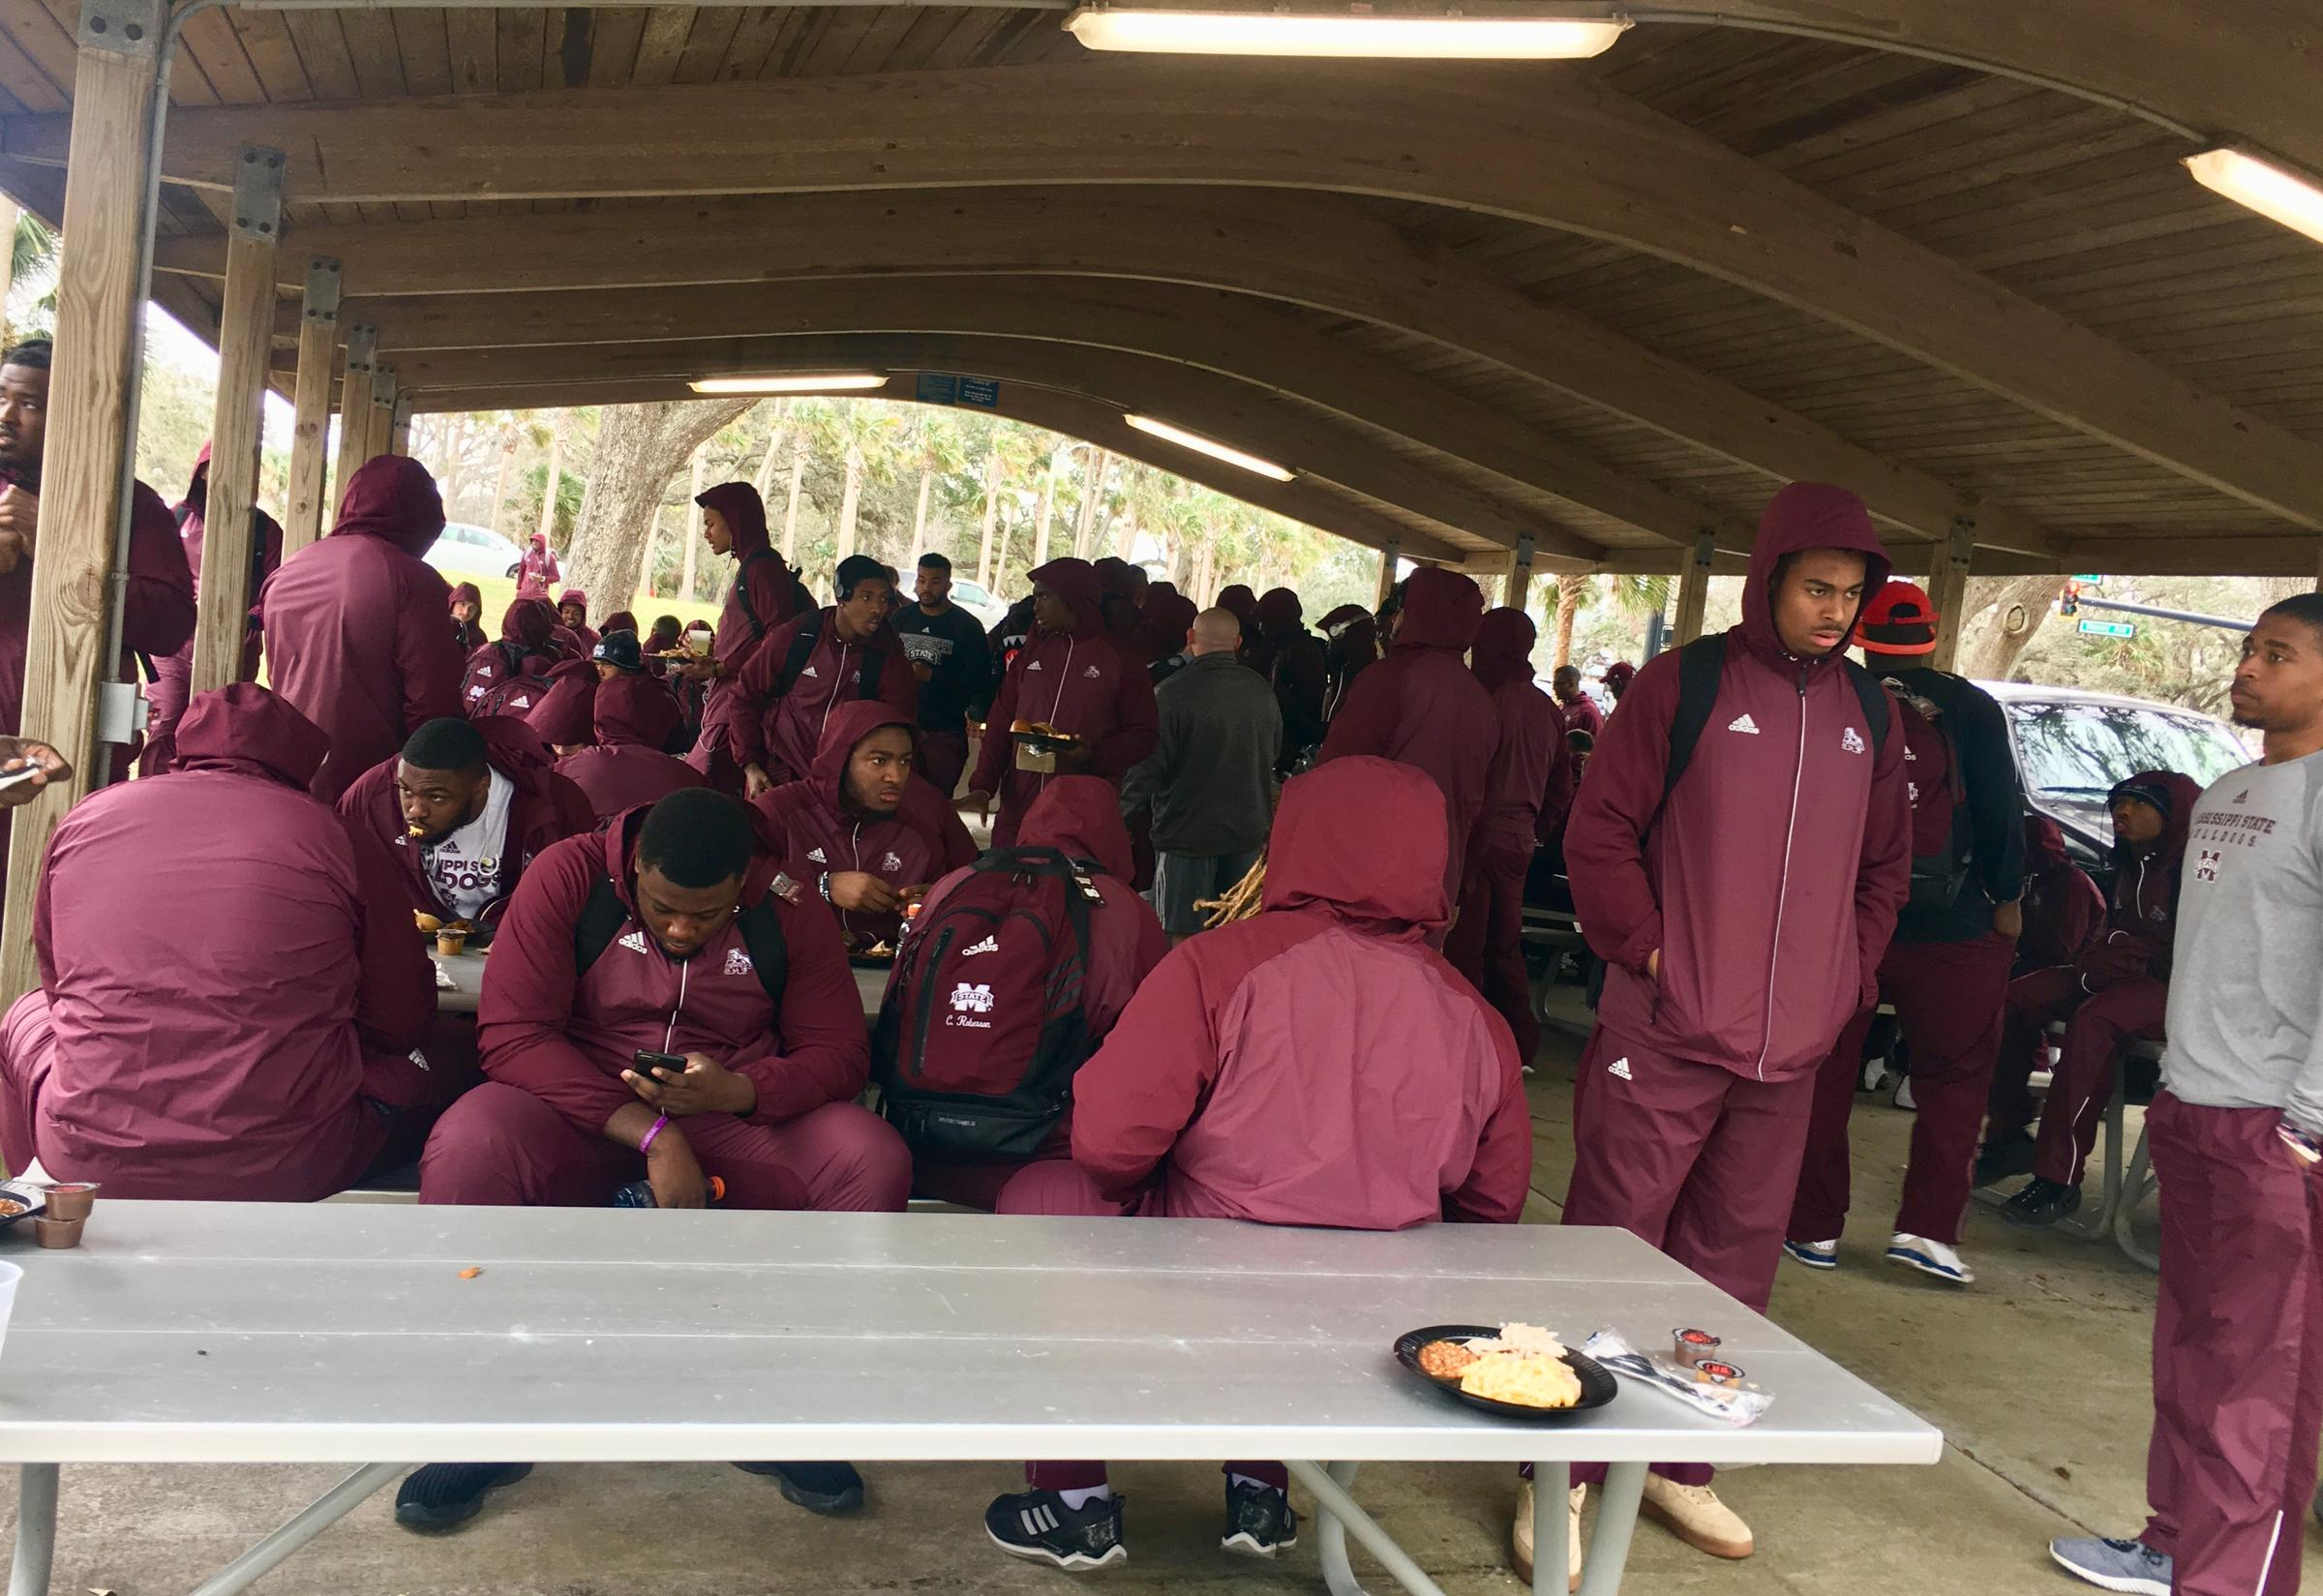 Mississippi State players get a catered barbecue lunch before touring ships at the Mayport Naval Base